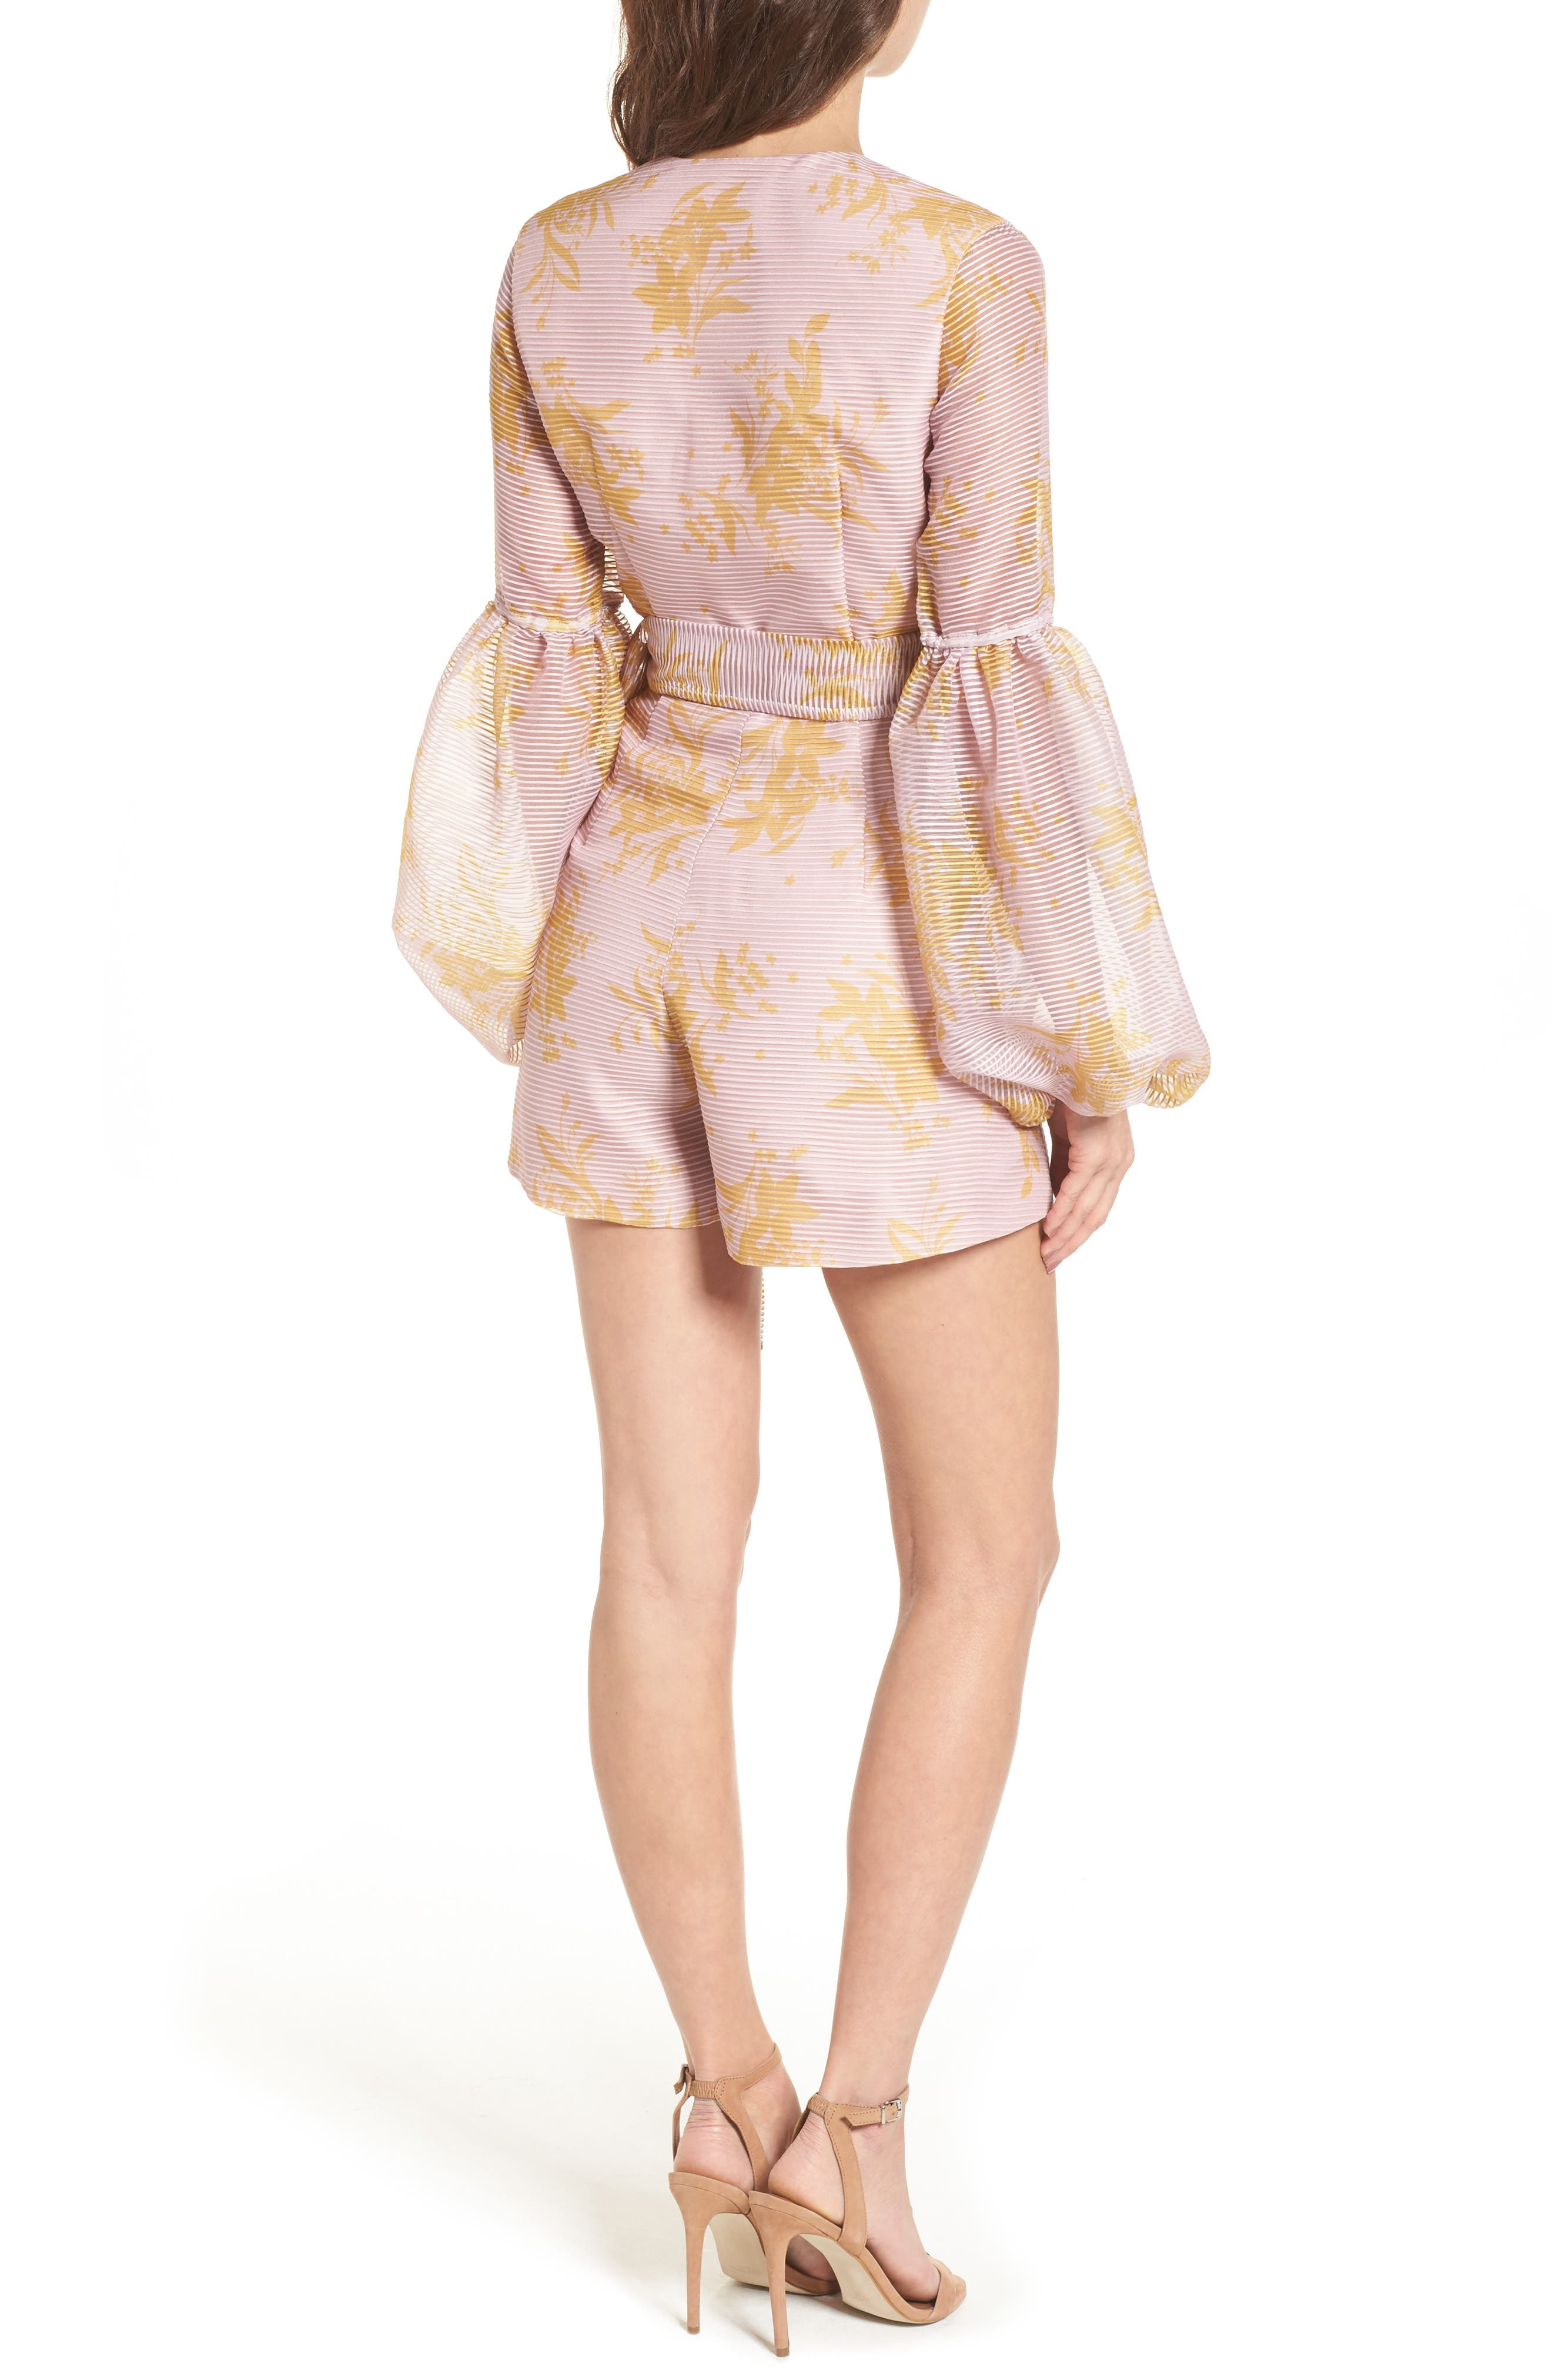 Stand Tall Romper,                             Alternate thumbnail 2, color,                             Blush Stencil Floral